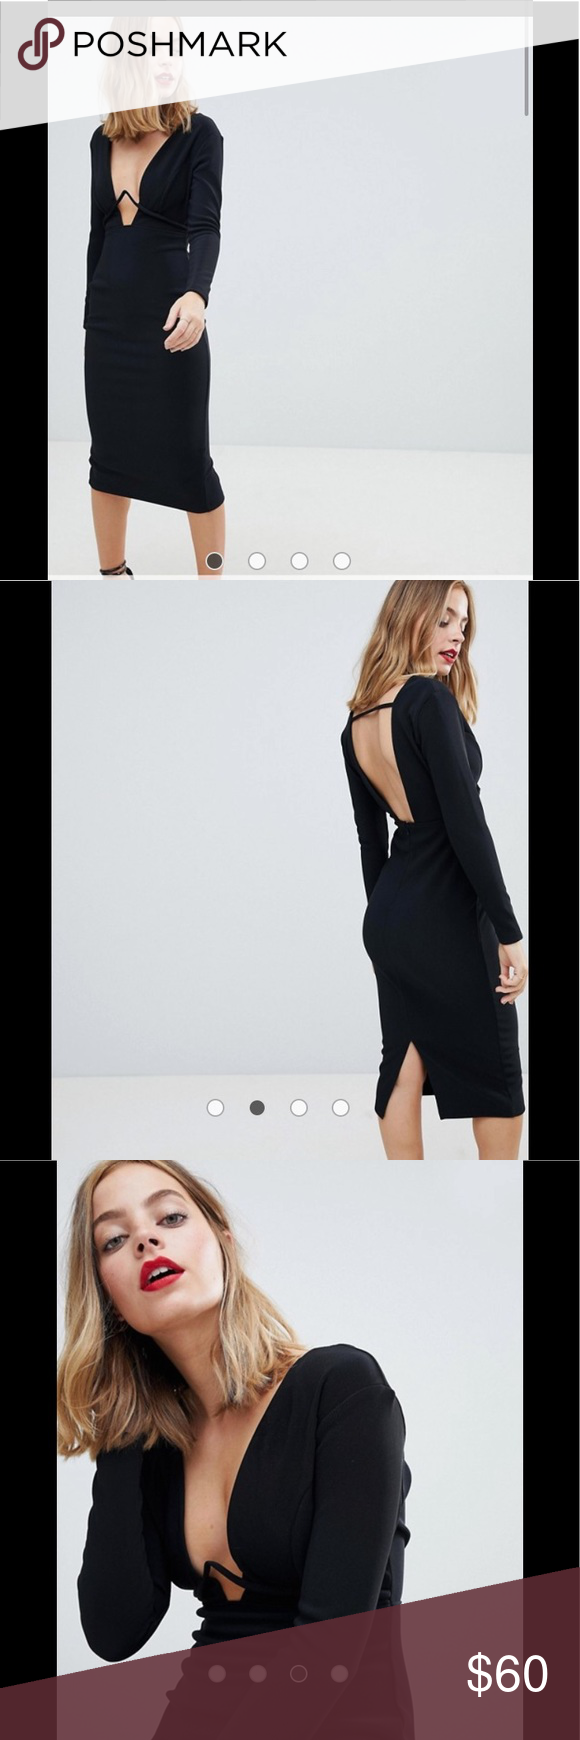 2820d52a786e ASOS petite long sleeve underwire bodycon dress 0  worn once as shown